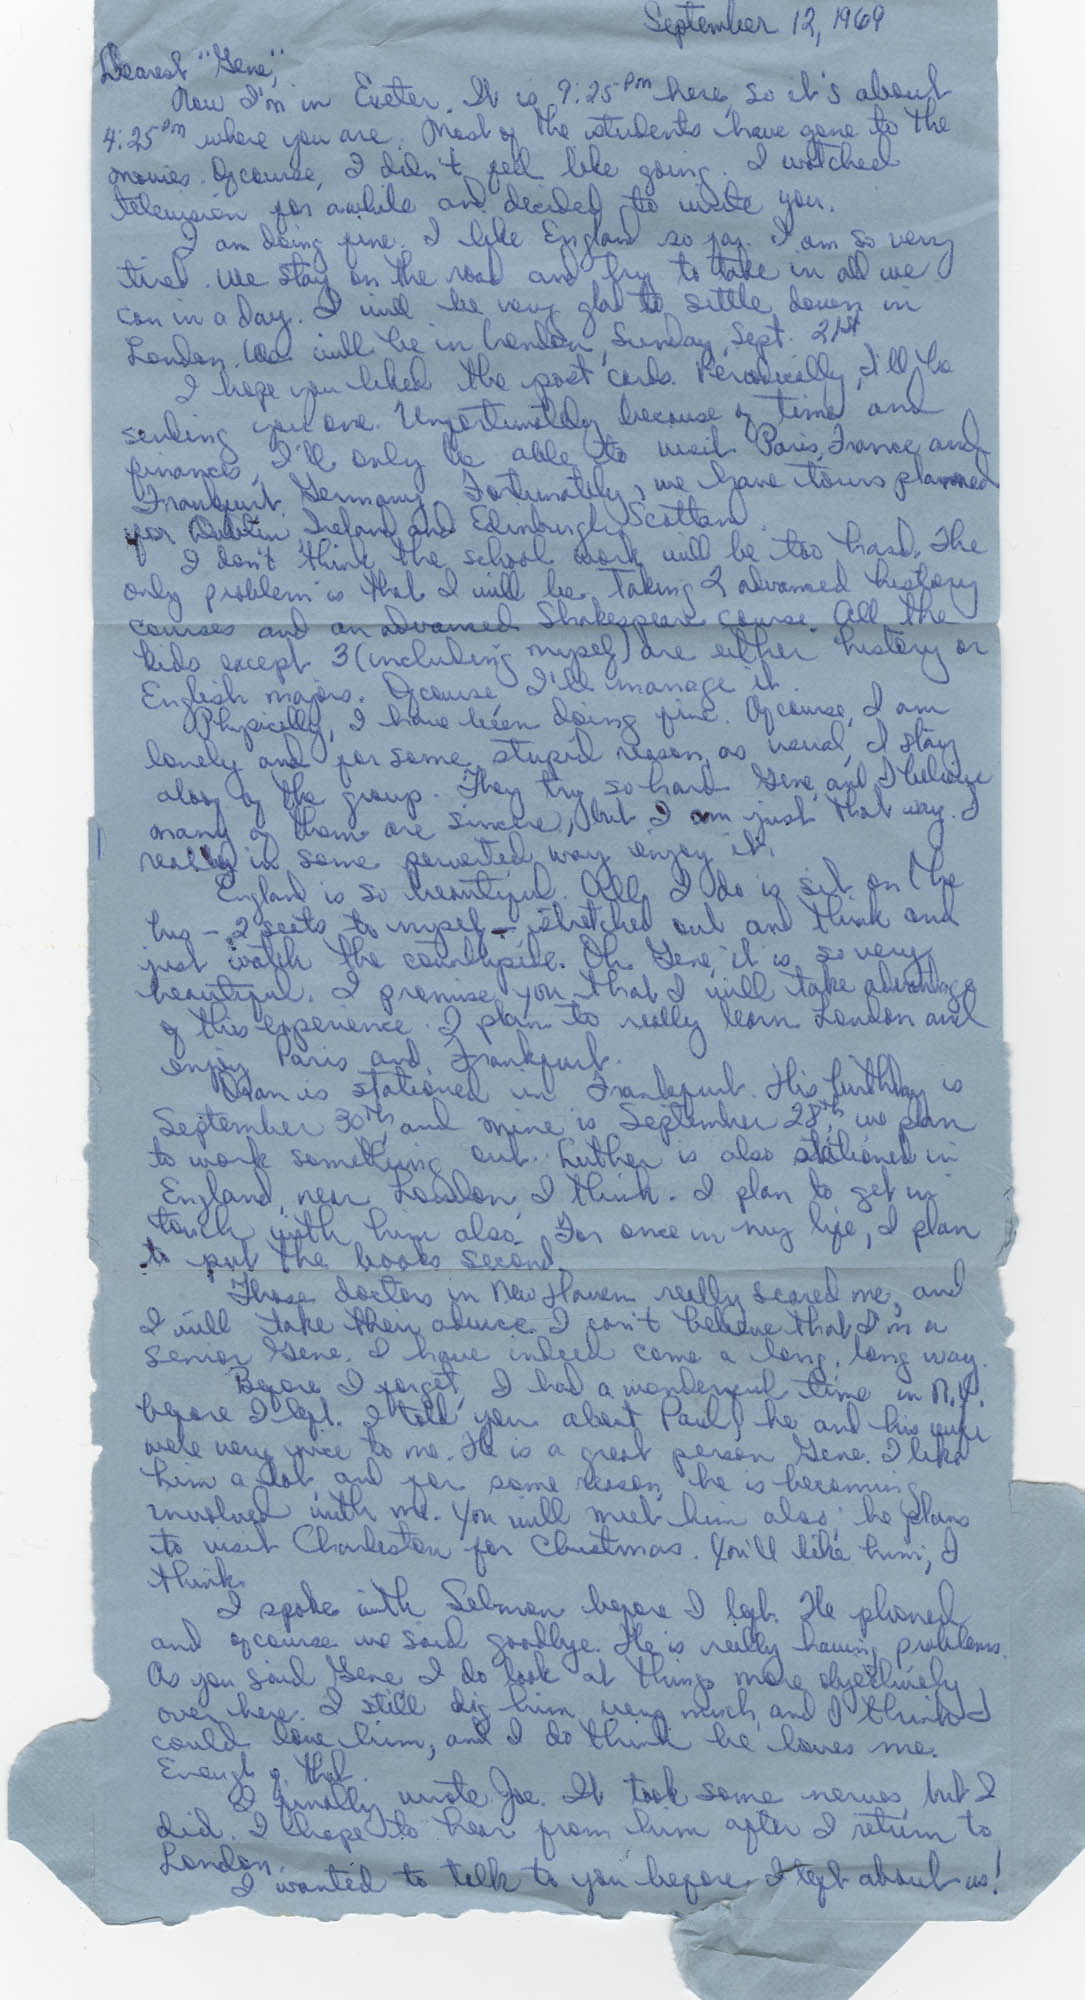 Letter from Tyrone B. Haynes to Eugene C. Hunt, September 12, 1969